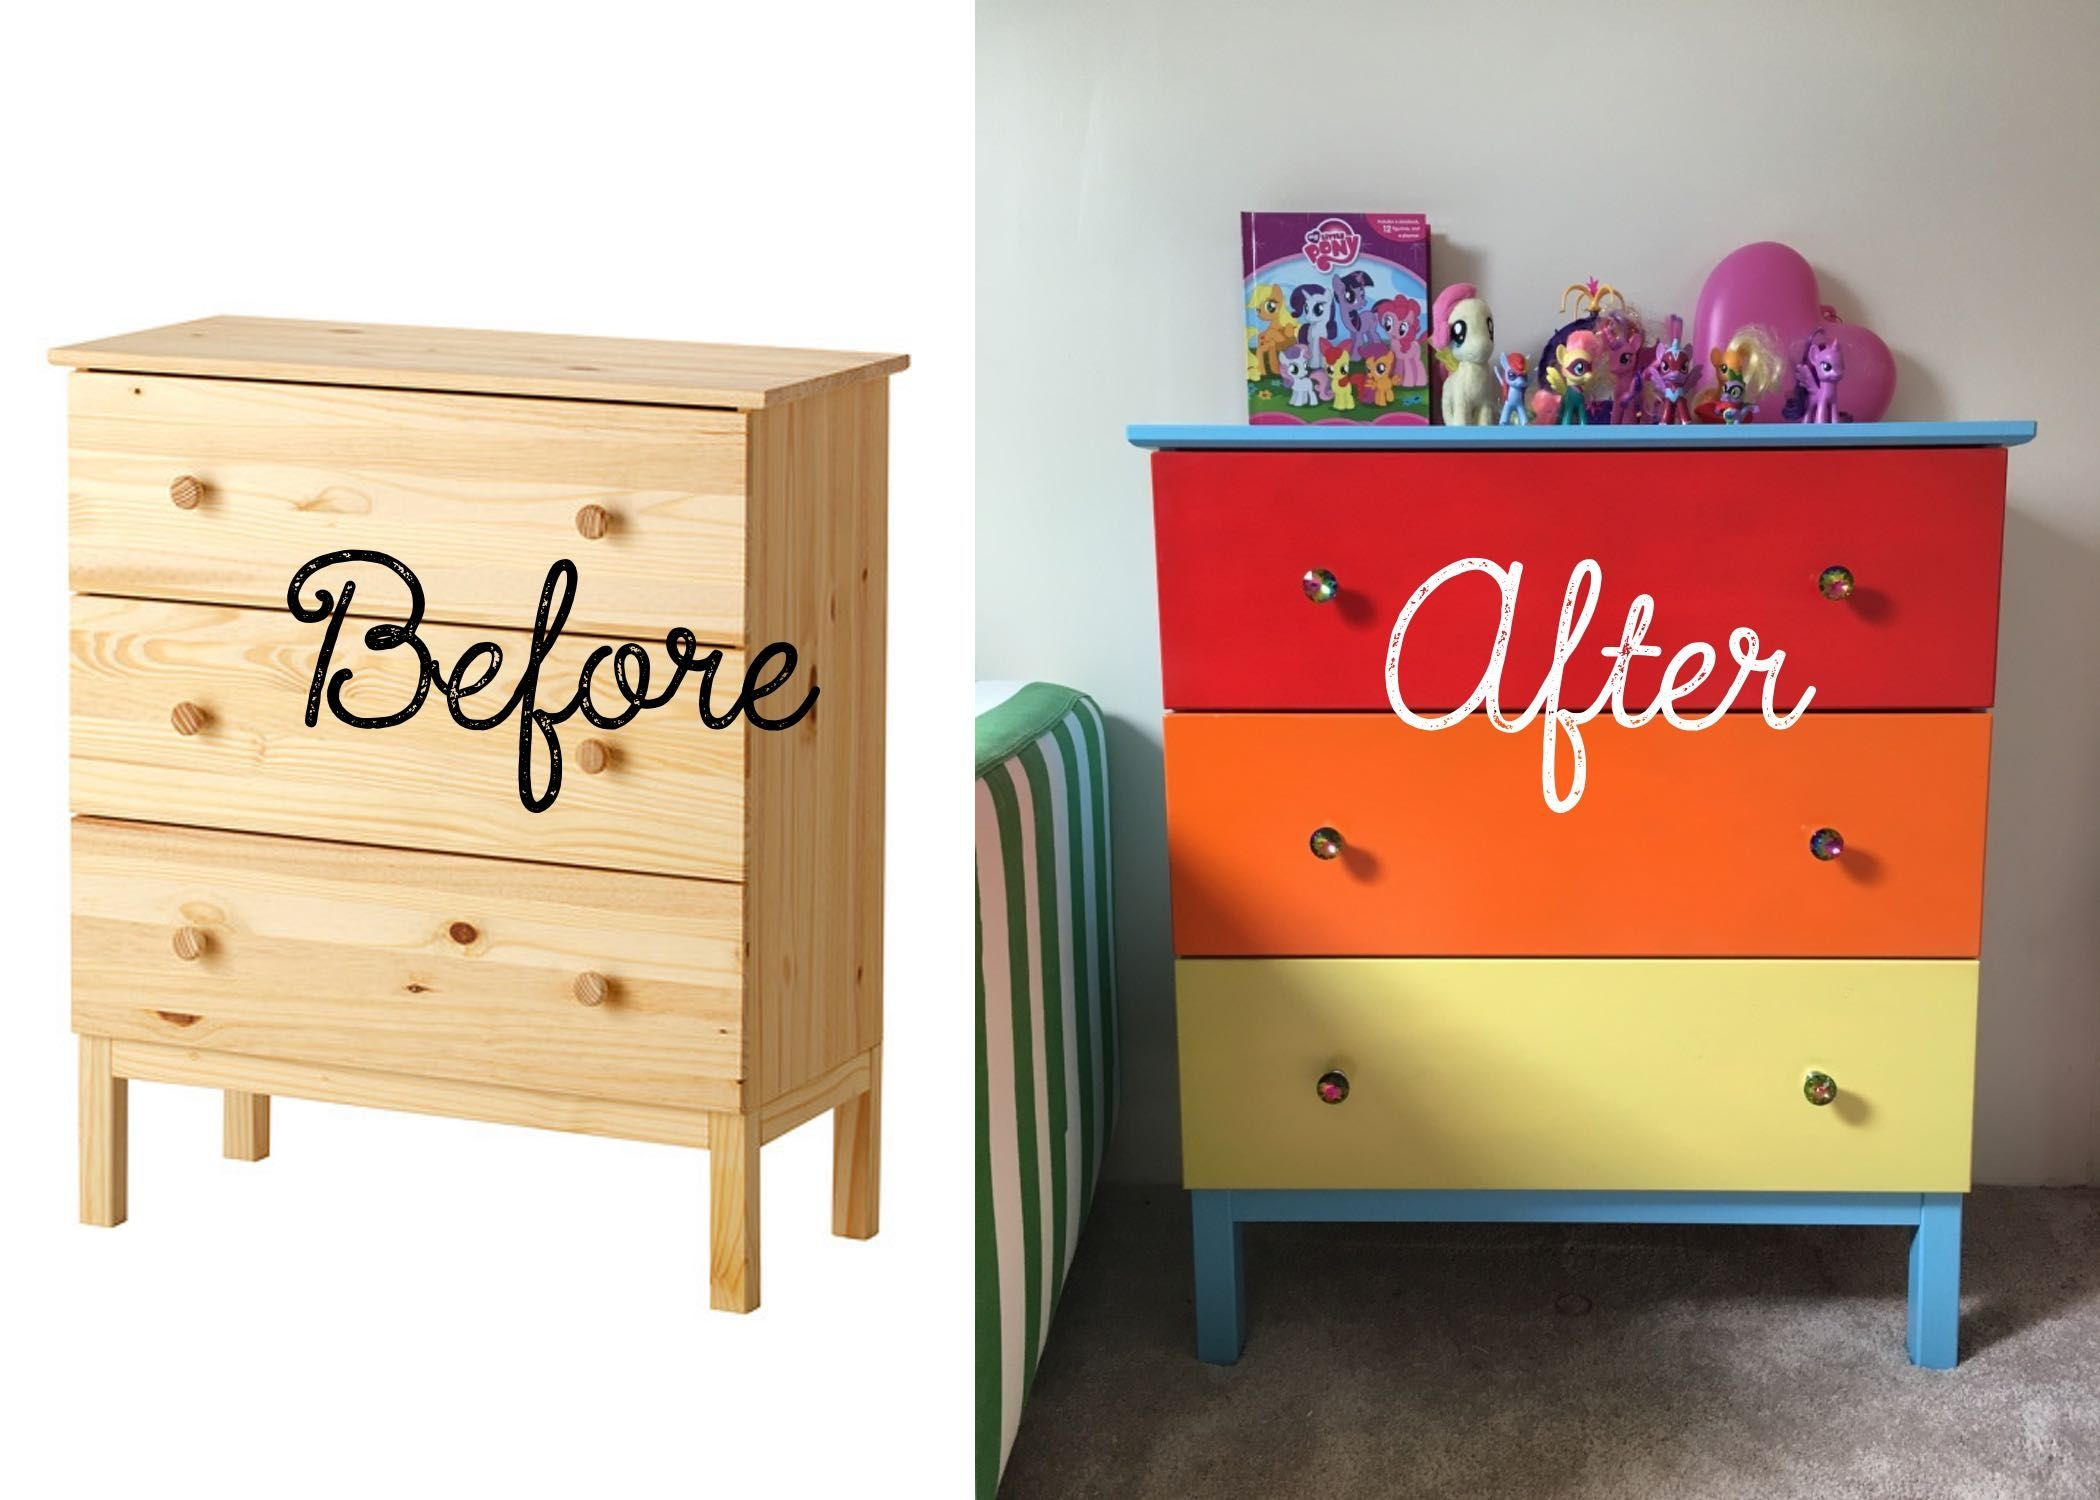 Muebles Dash Express - Diy My Little Pony Themed Bedroom Ikea Hacks Rainbow Dash [mjhdah]https://s-media-cache-ak0.pinimg.com/originals/b0/6d/35/b06d3509508e92f4def2263ee713498c.jpg